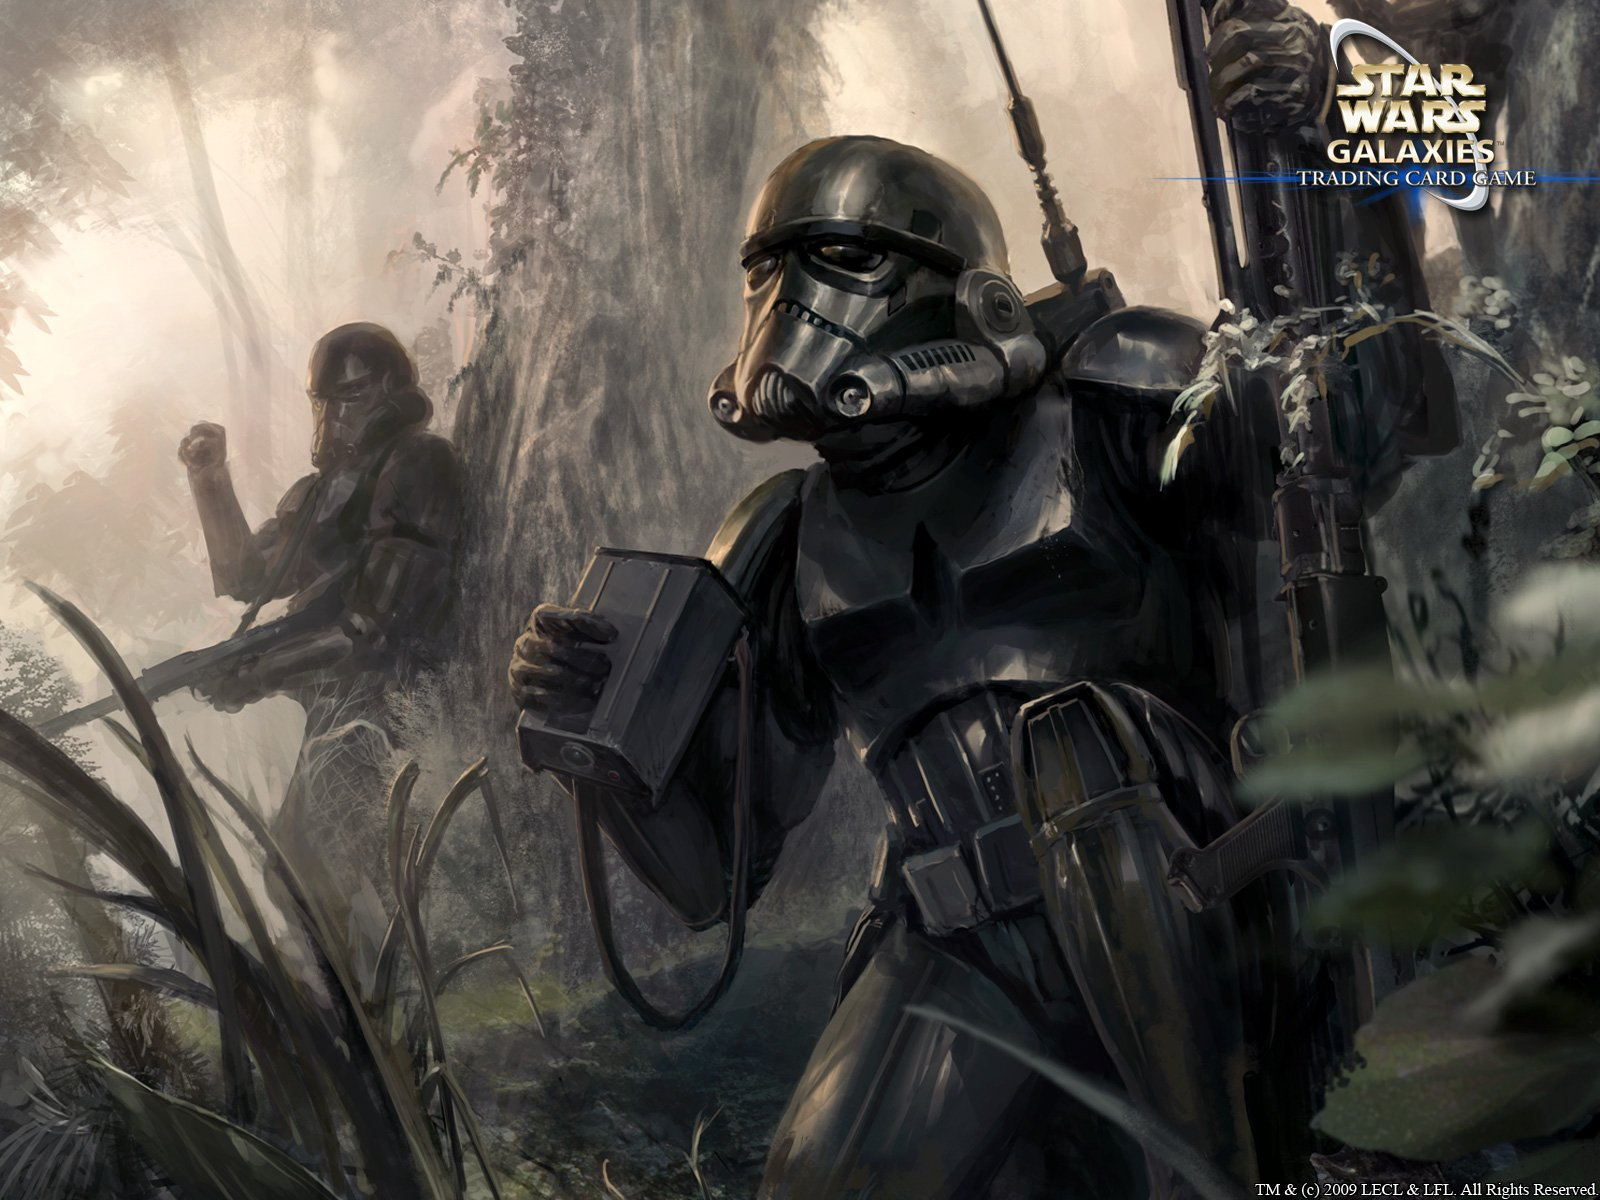 Star Wars Galaxies Wallpaper